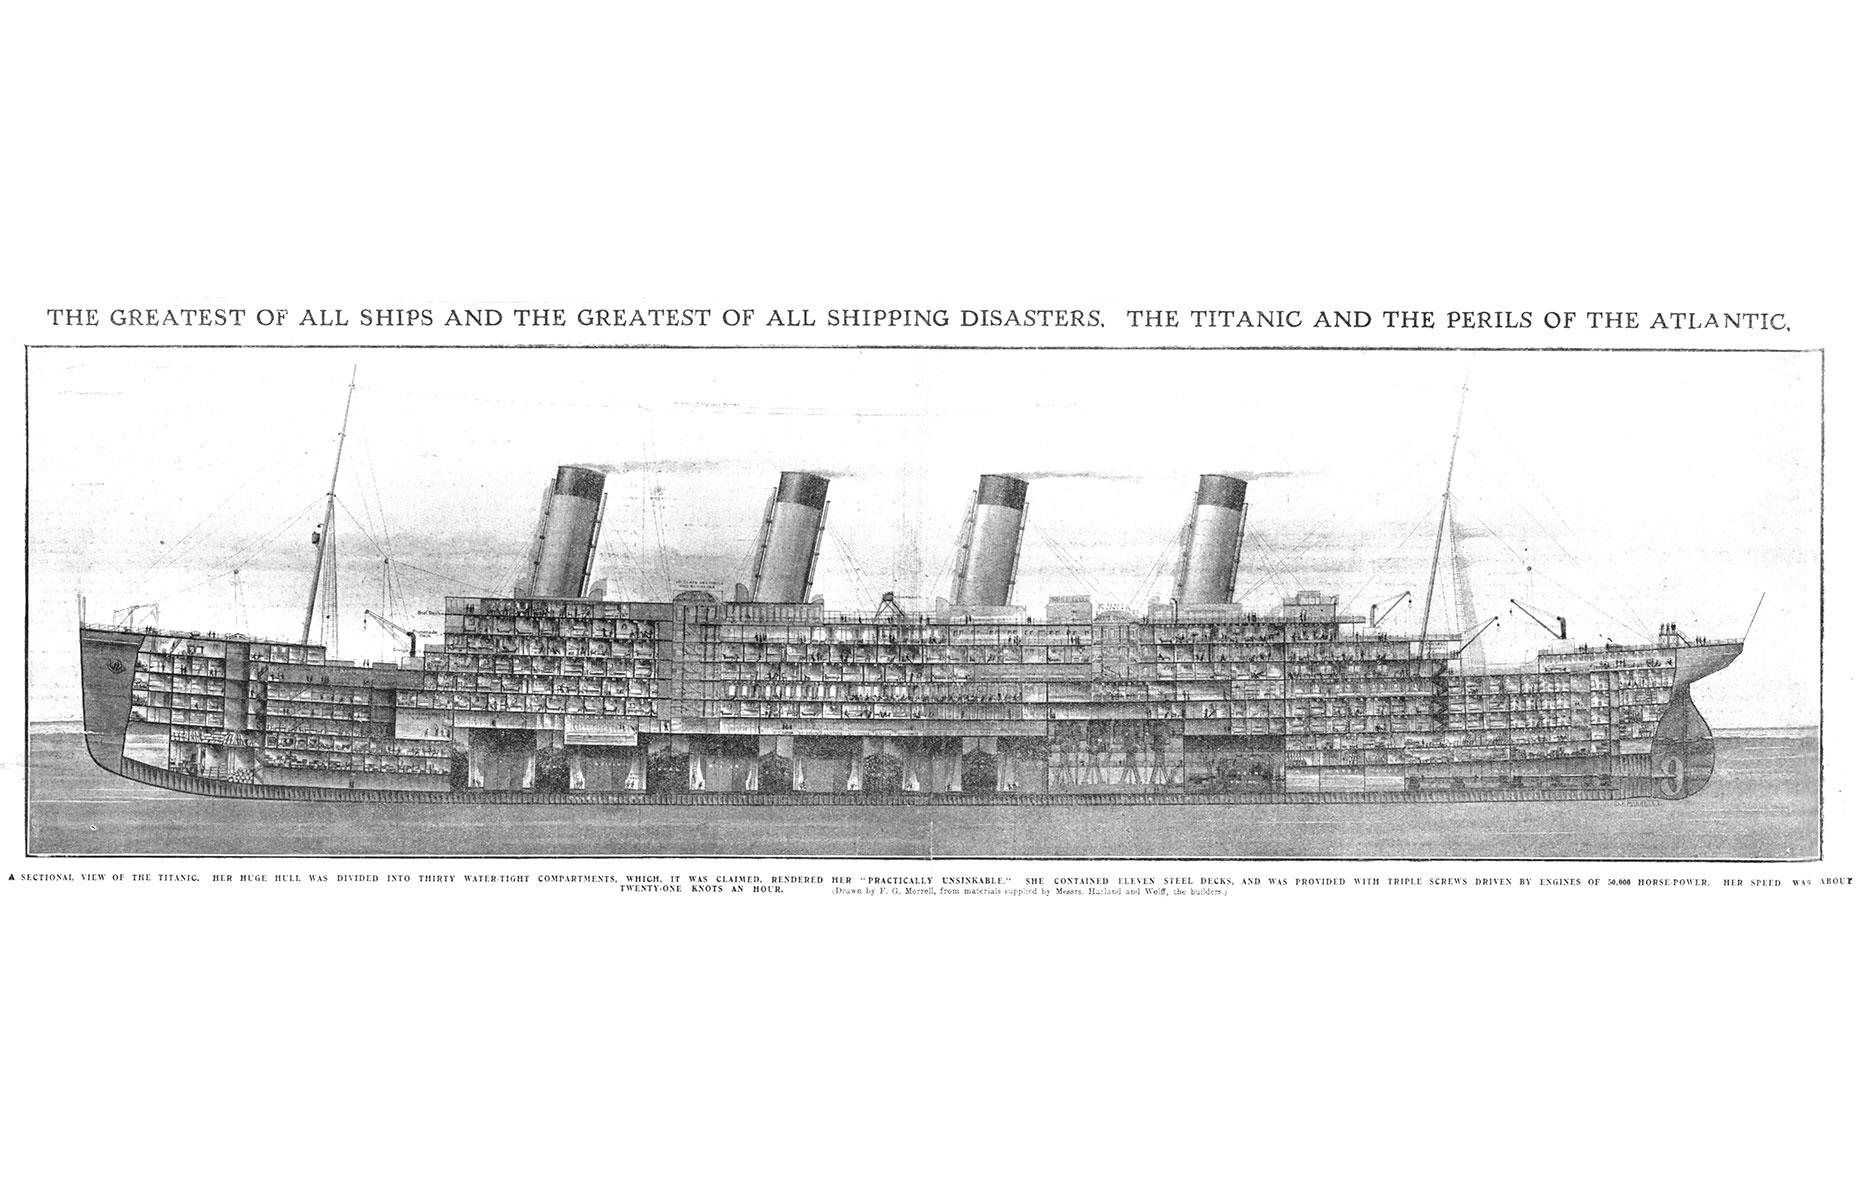 Slide 31 of 46: Captain Smith ordered the doors to the 16 watertight bulkheads to be shut. The Titanic could stay afloat if four of these compartments were full. But with over 100-feet (30m) of the ship opened up to the sea, six had flooded, including one of the boiler rooms. The walls of the compartments didn't extend far enough up the ship to prevent the water flooding into the next section. Within three hours of striking the iceberg shehad sunk.